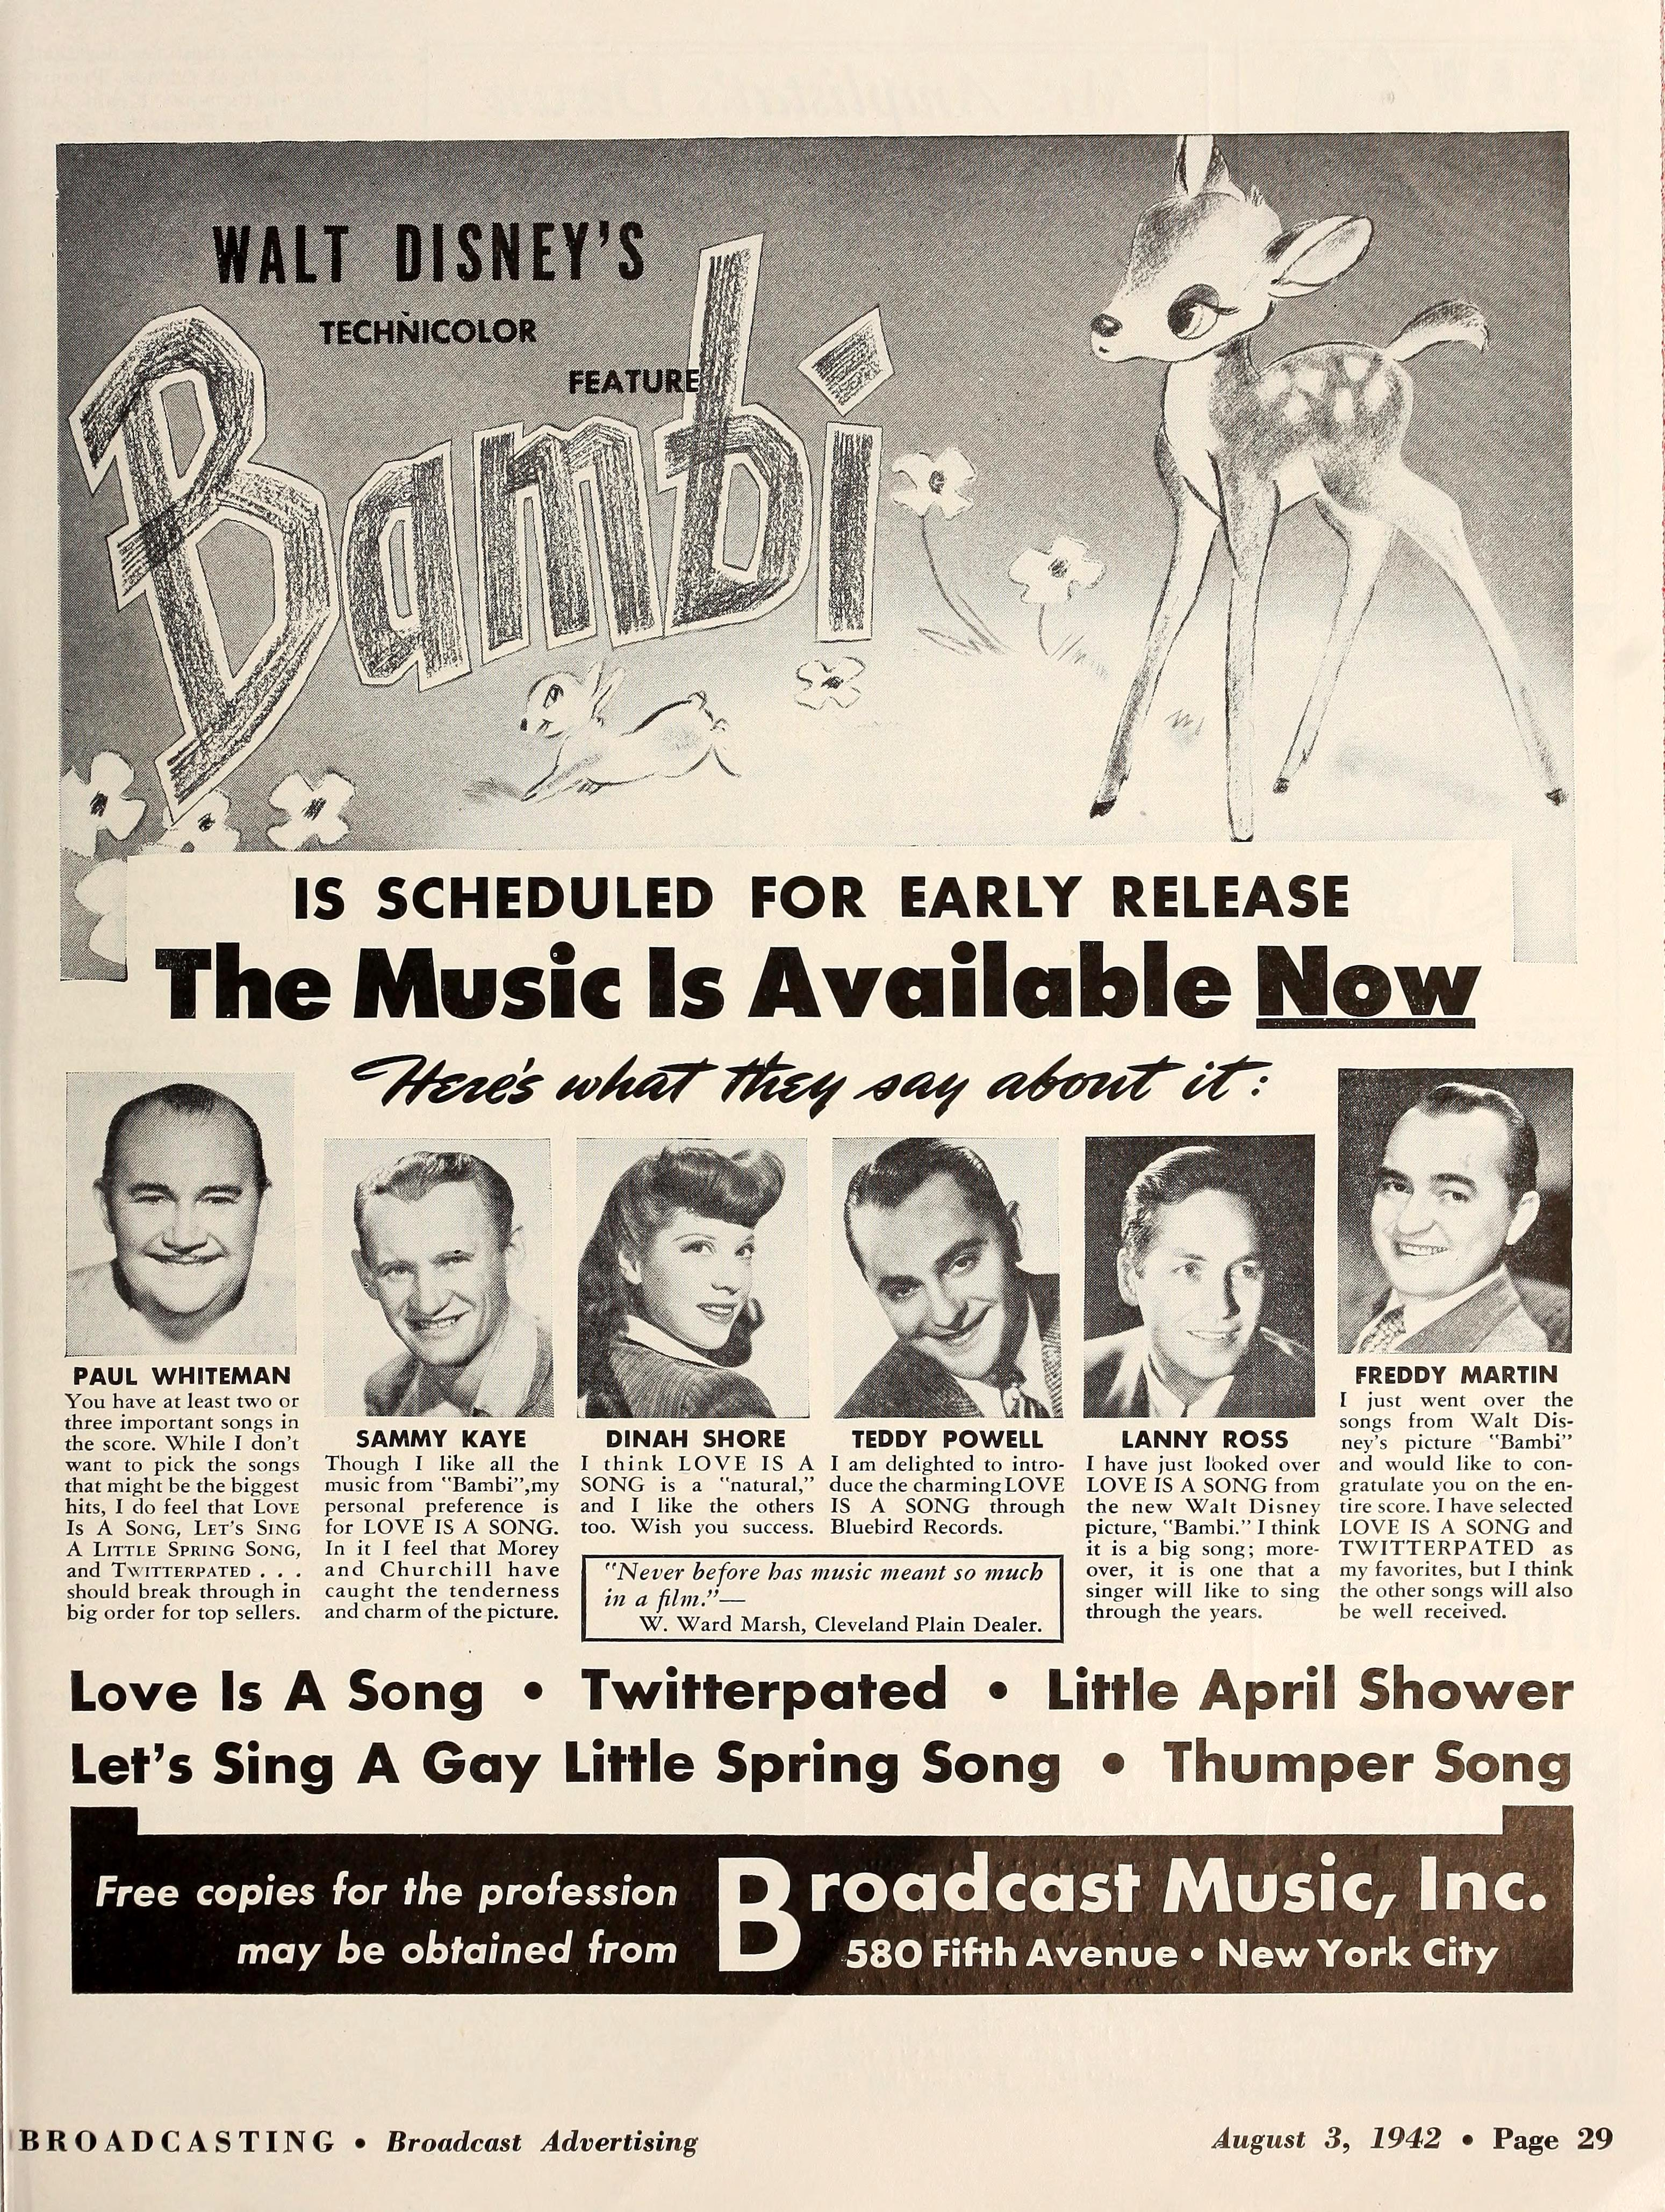 All of your favorites perform the hits from Bambi. Broadcasting, August 3, 1942.